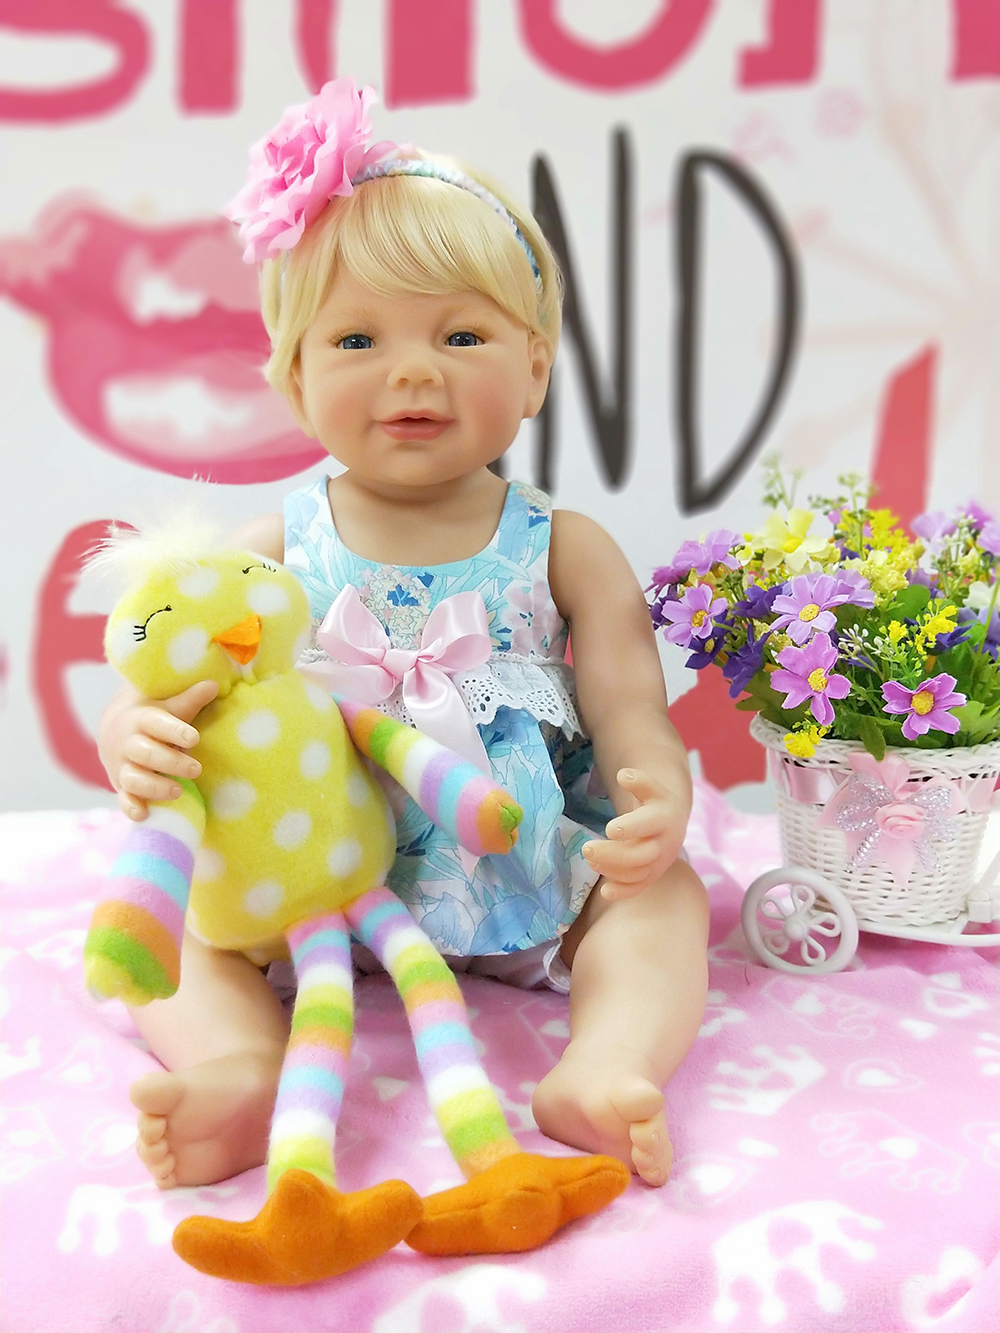 Pursue 22 Inches Handmade Full Body Vinyl Silicone Reborn Toddler Princess Baby Girl Doll Toys for Children Birthday Gift Dolls collectible washable full body vinyl silicone reborn toddler princess girl baby alive doll toys for children birthday gift dolls